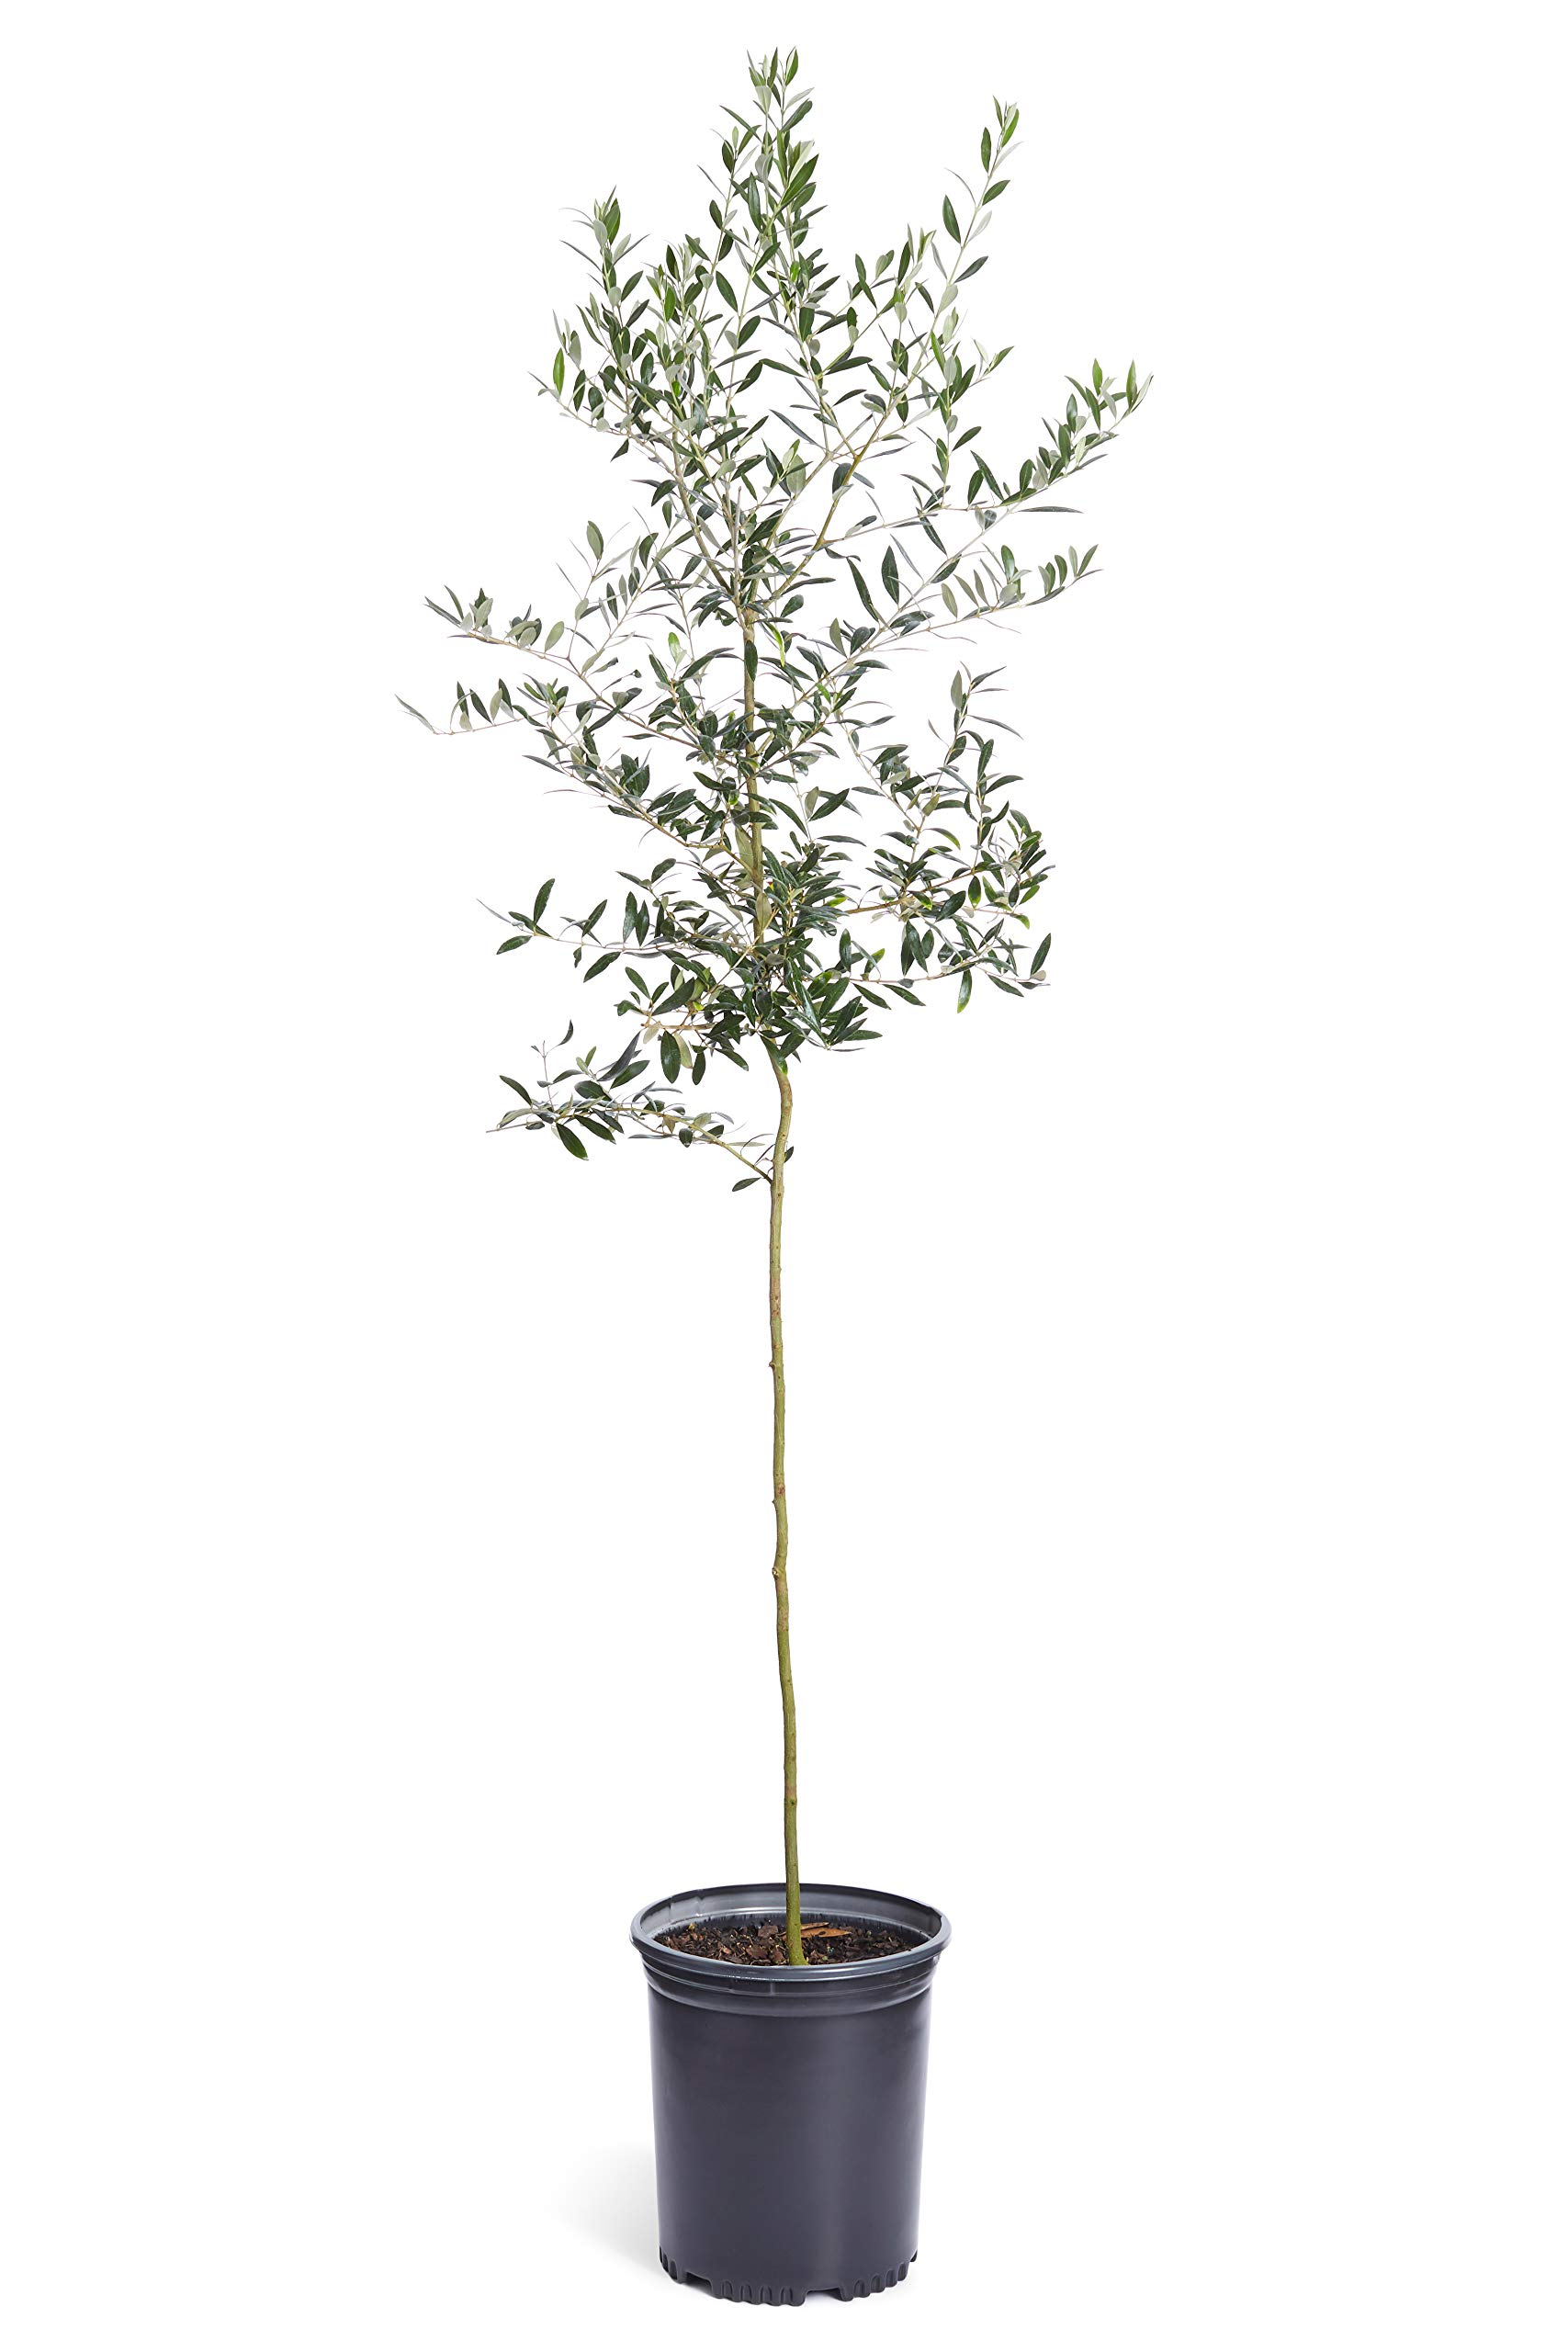 Arbequina Olive Tree 1-2 feet Tall - Get Olives 1st Year with Large Olive Trees - Indoor/Patio Live Olive Trees | No Shipping to AZ